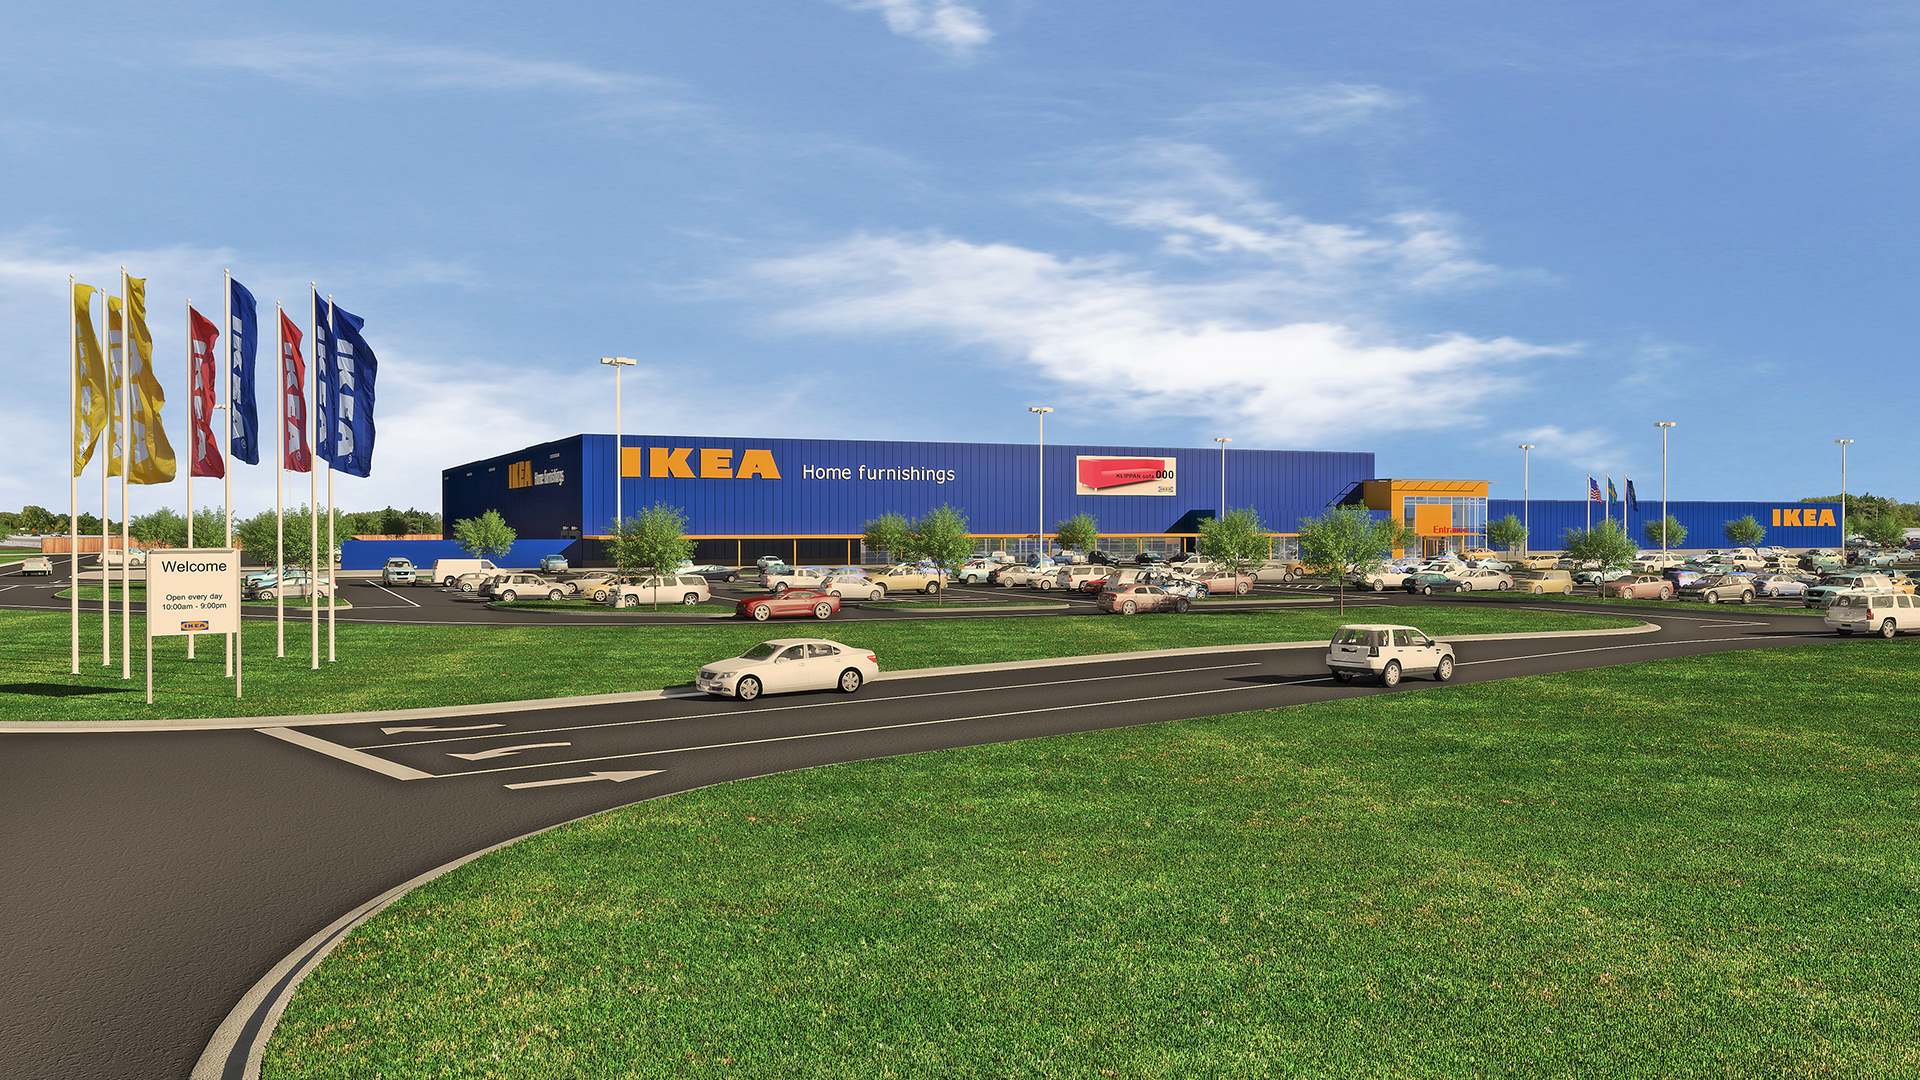 Ikea applauds city council of fishers indiana for its for Ikea conshohocken pennsylvania